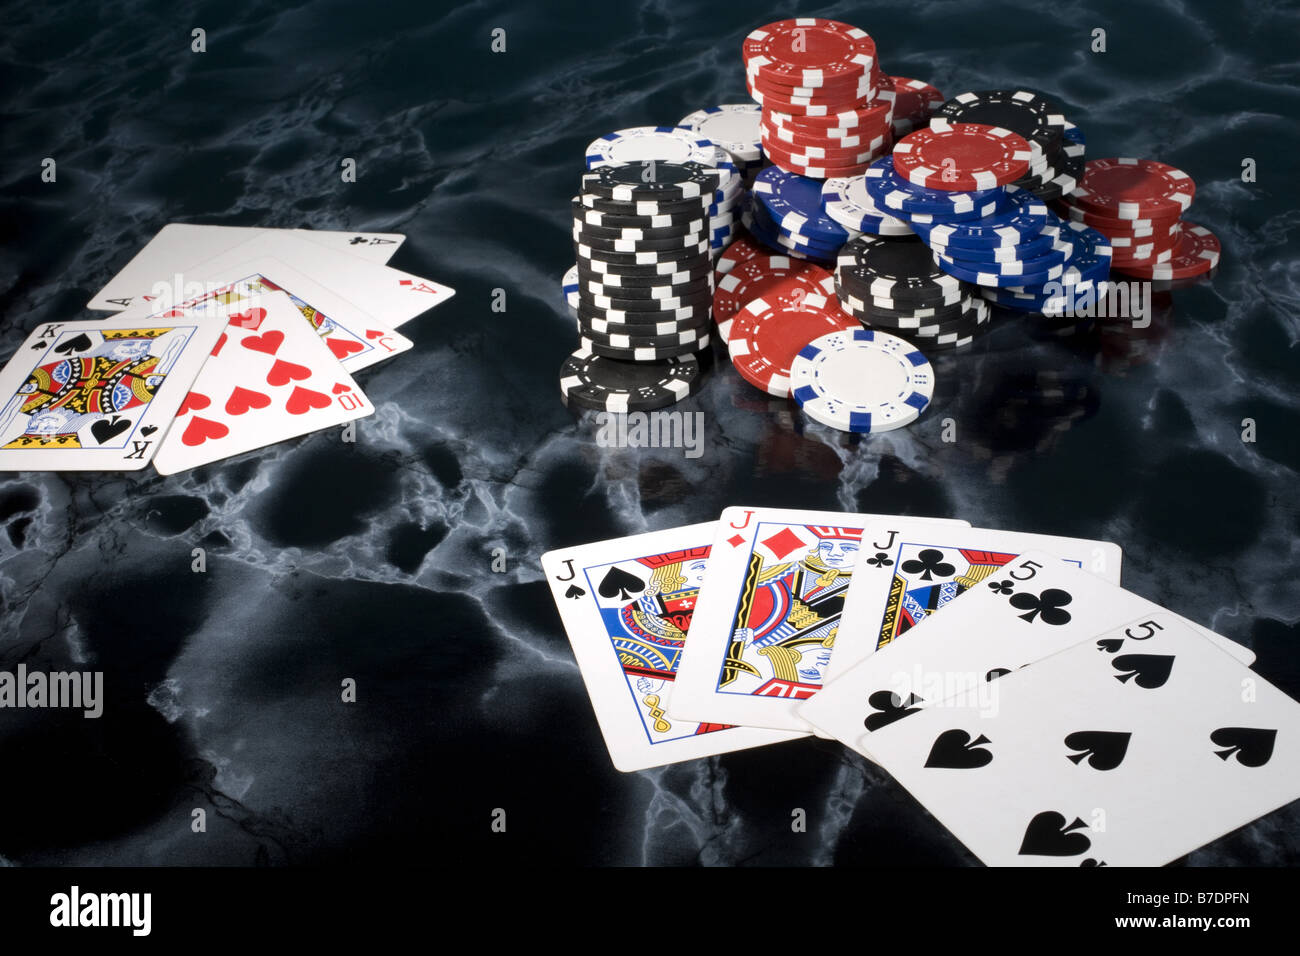 poker hands, a full house with pile of chips - Stock Image